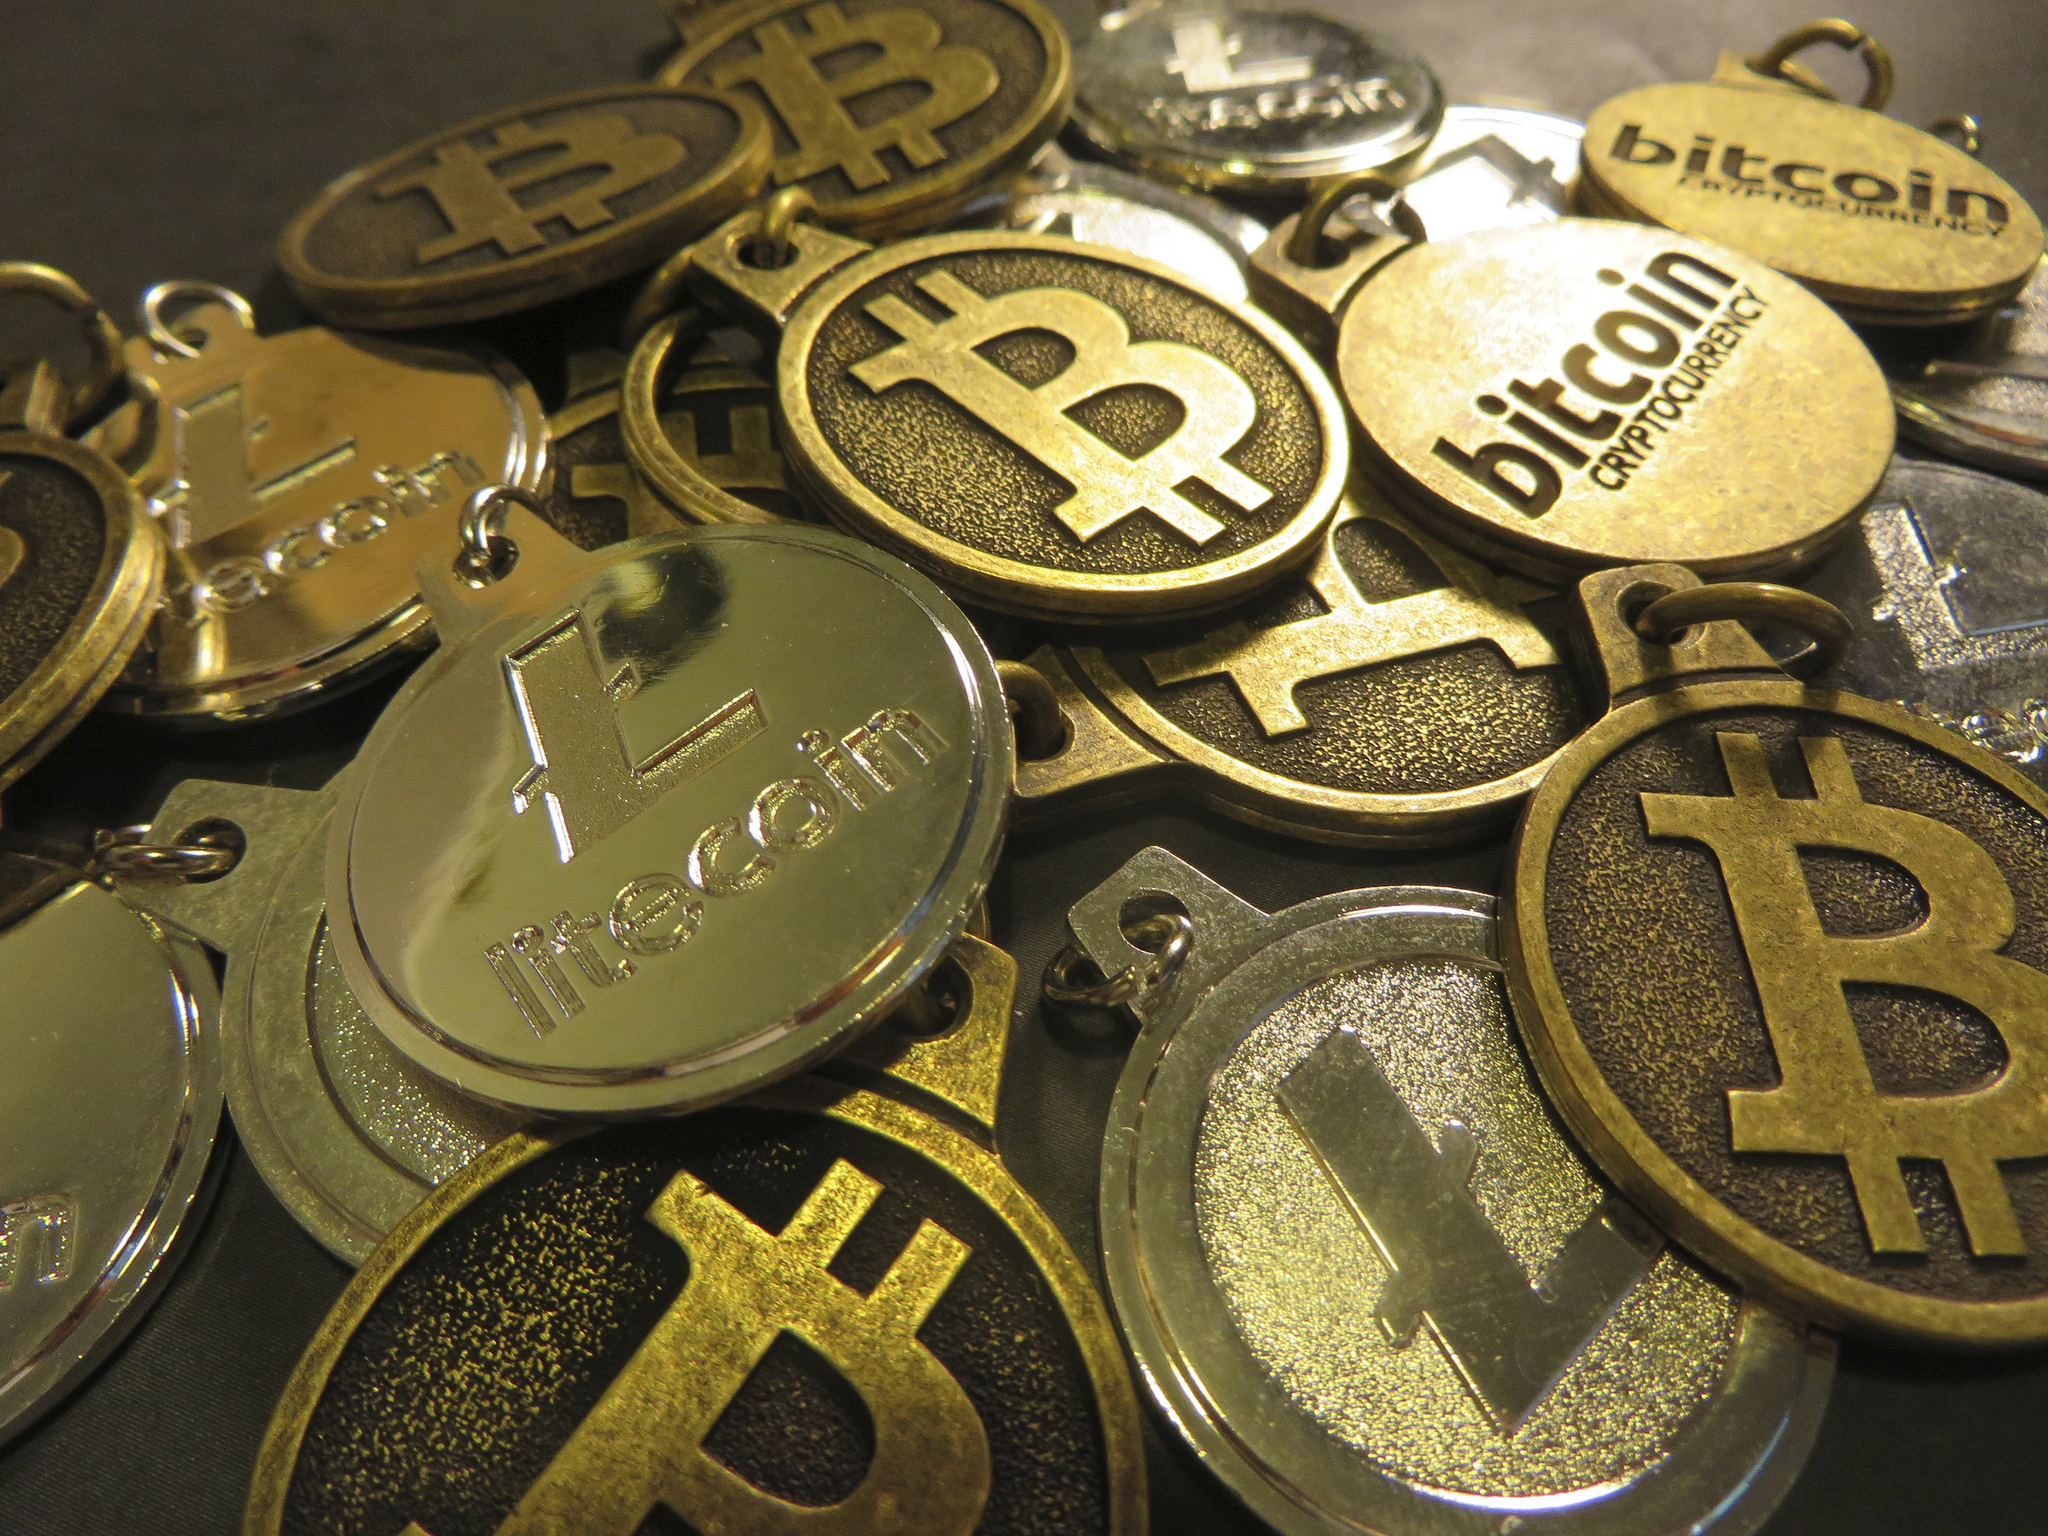 Gujarat's Bitcoin Scam Raises Questions on Fraud, Demonetisation and Cryptocurrency